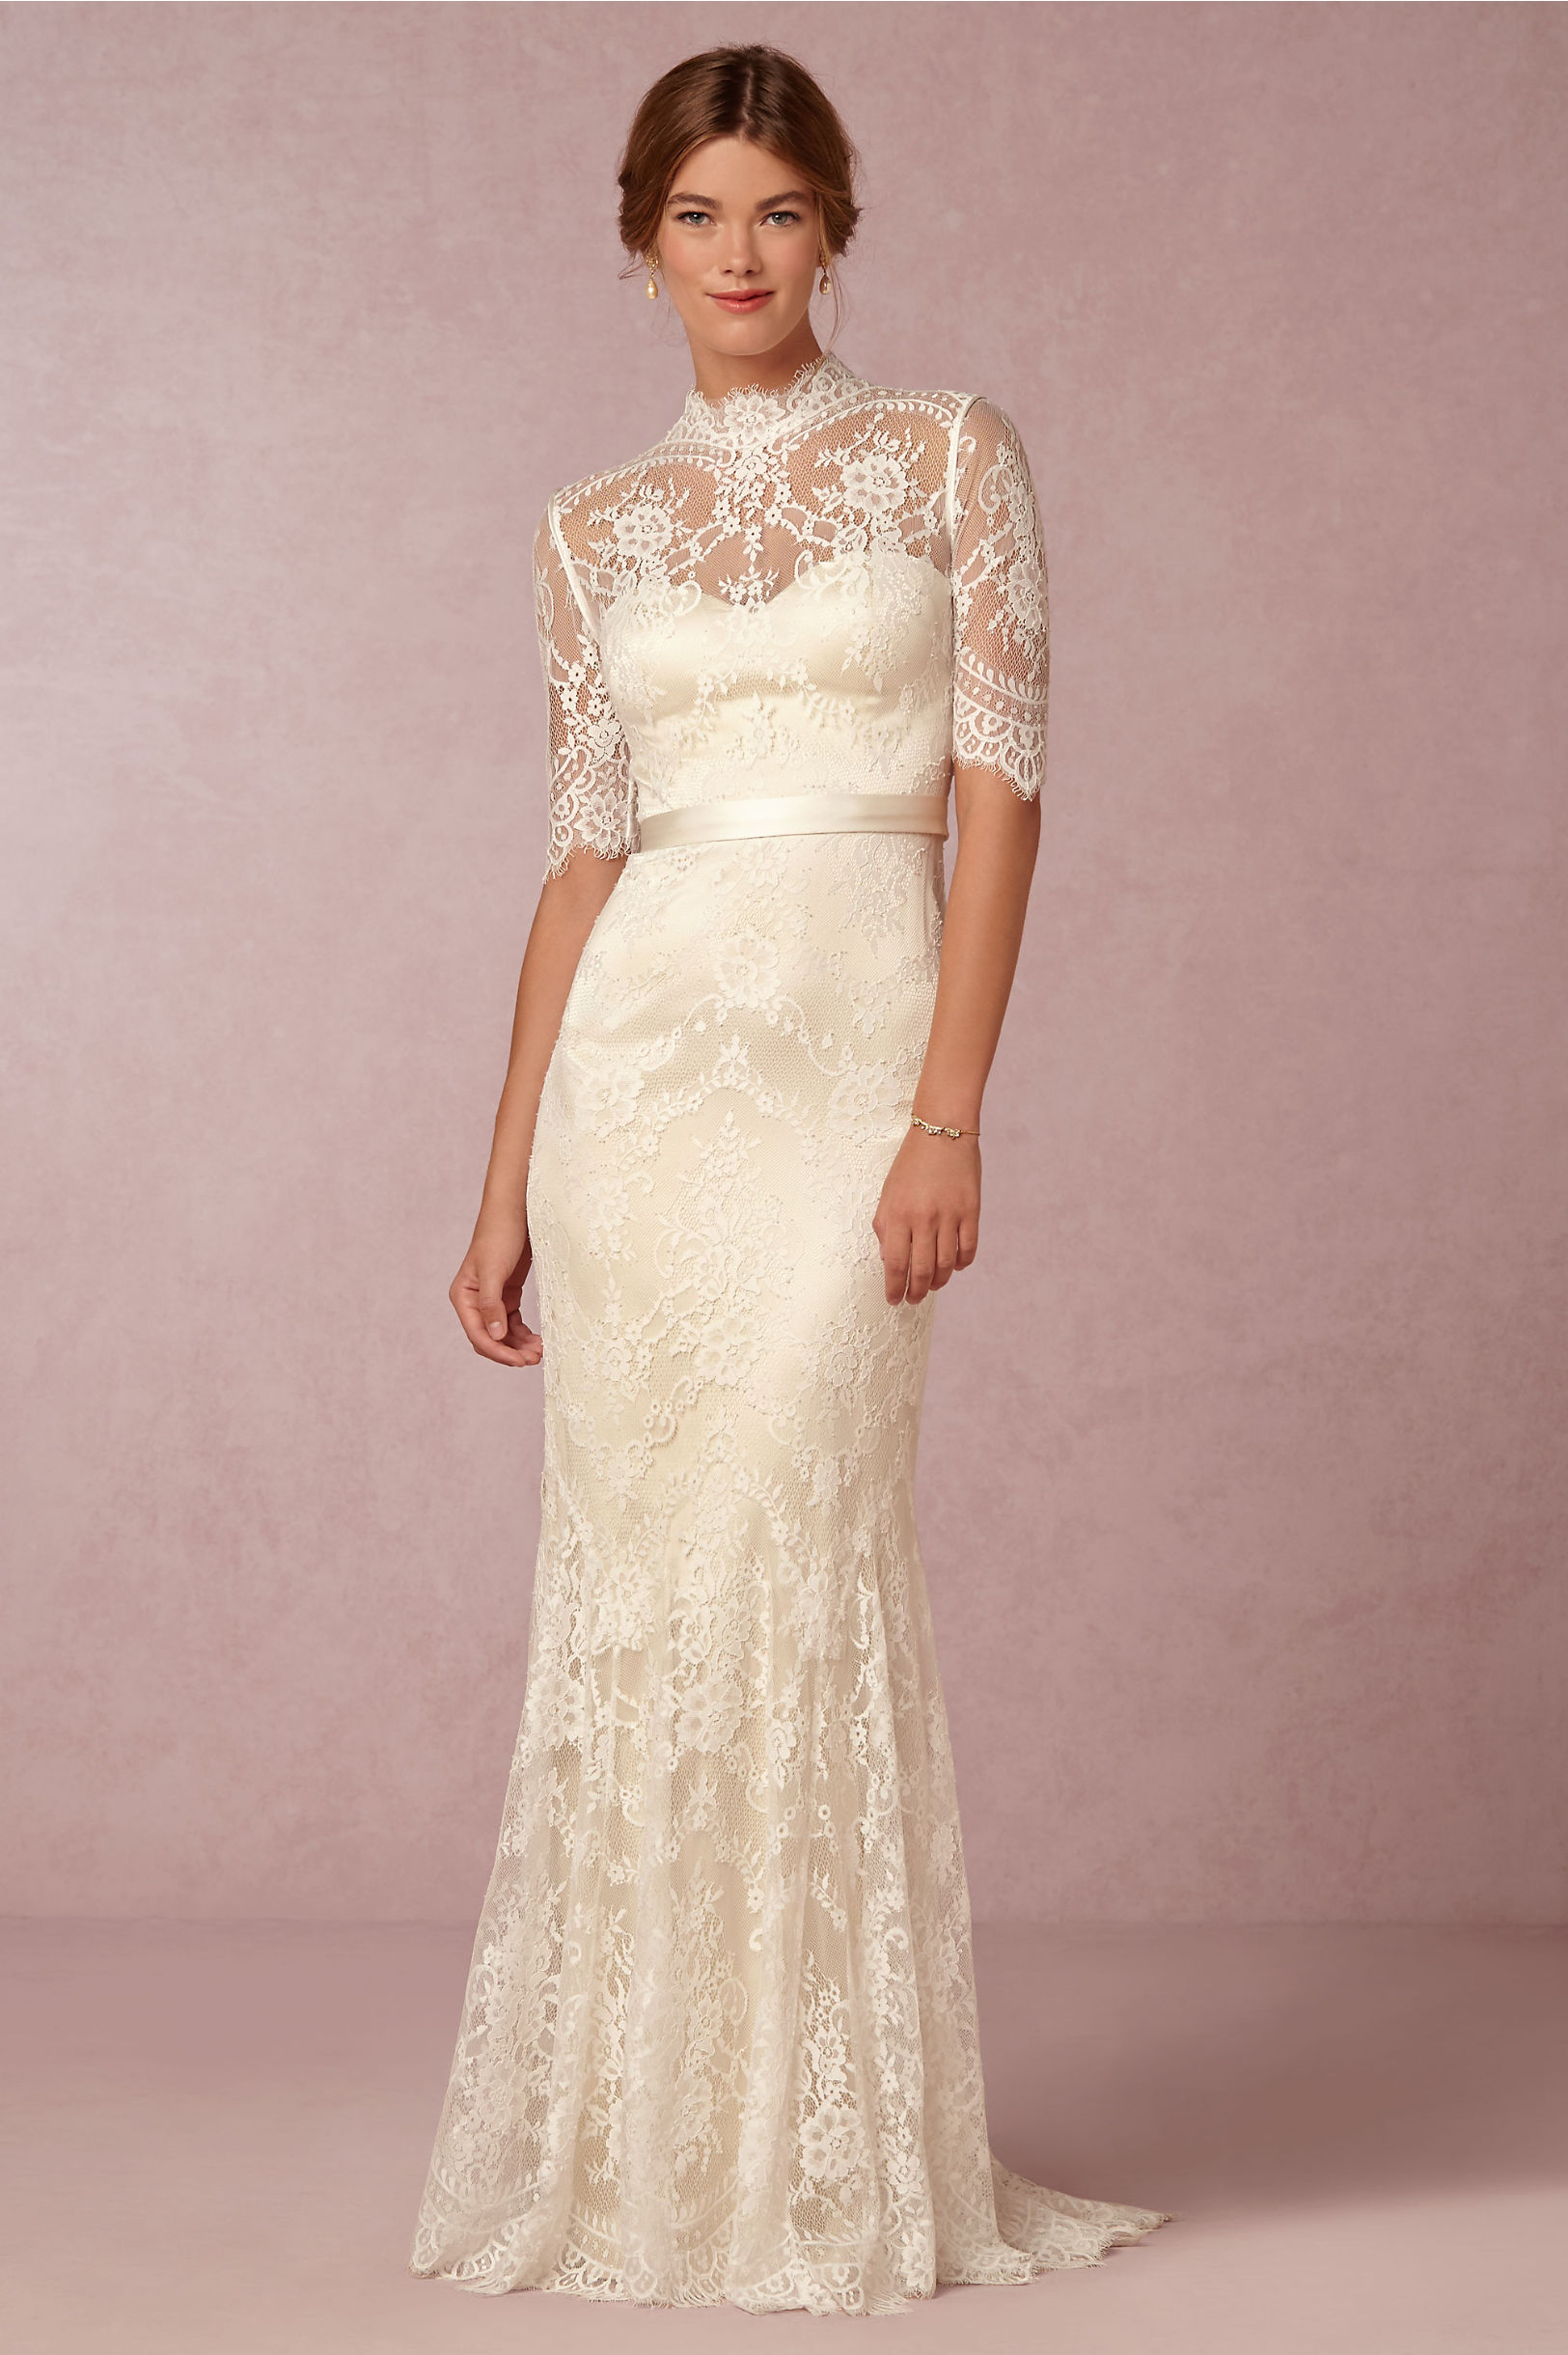 Catherine Deane Oyster Bridal Cream Bridgette Gown Bhldn